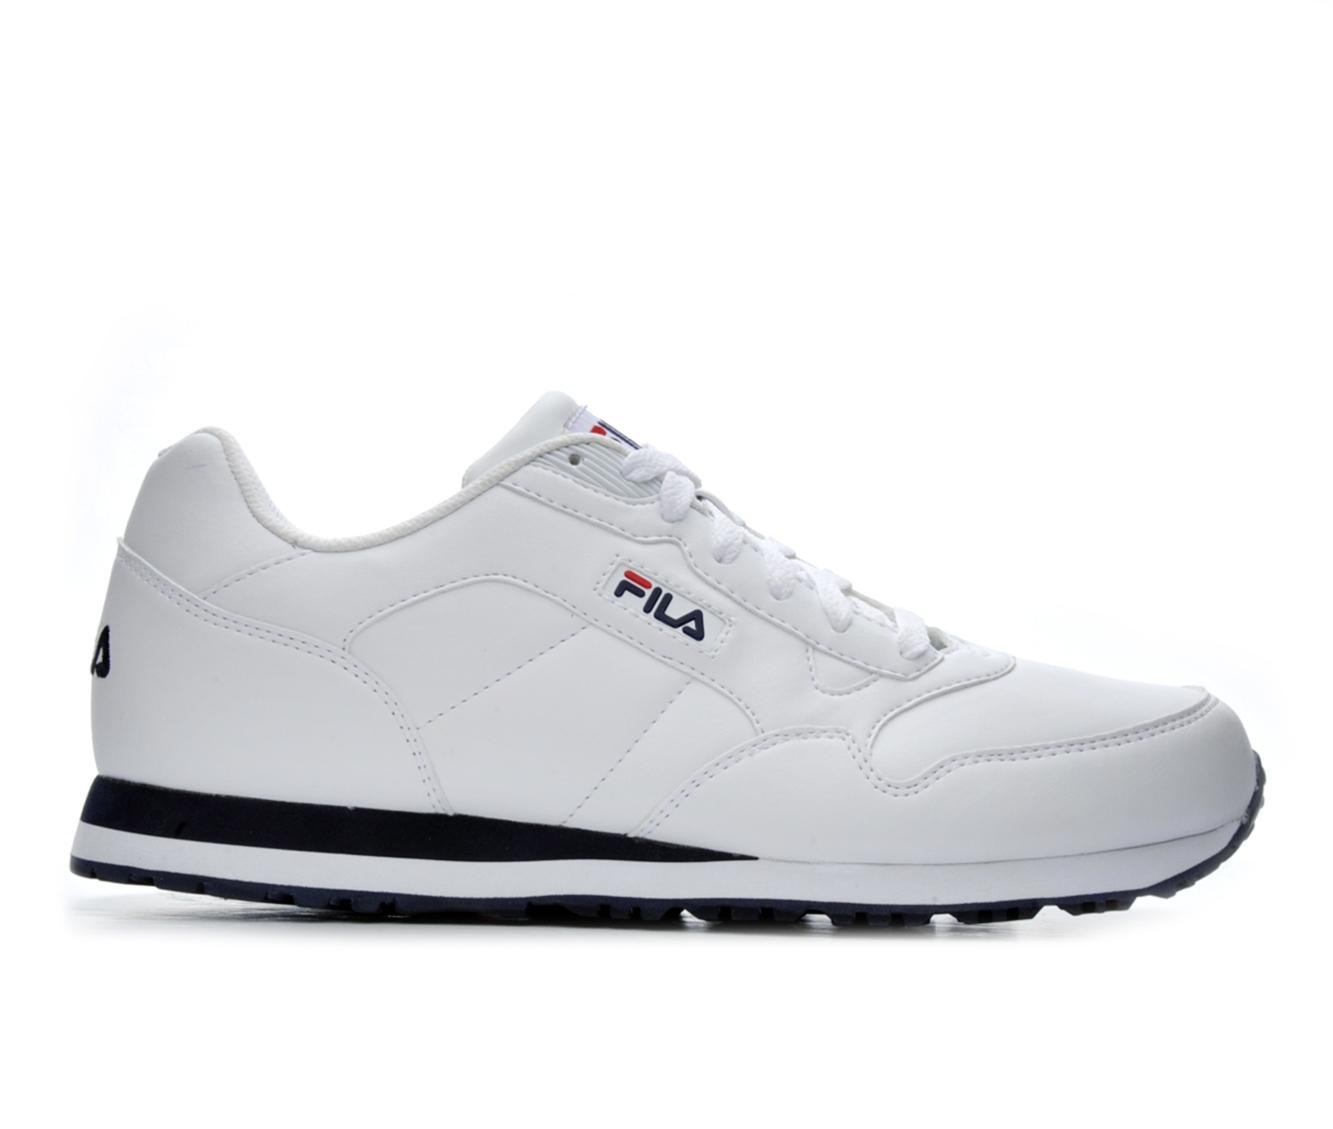 fila shoes cress retro sneakers LBZNZKV